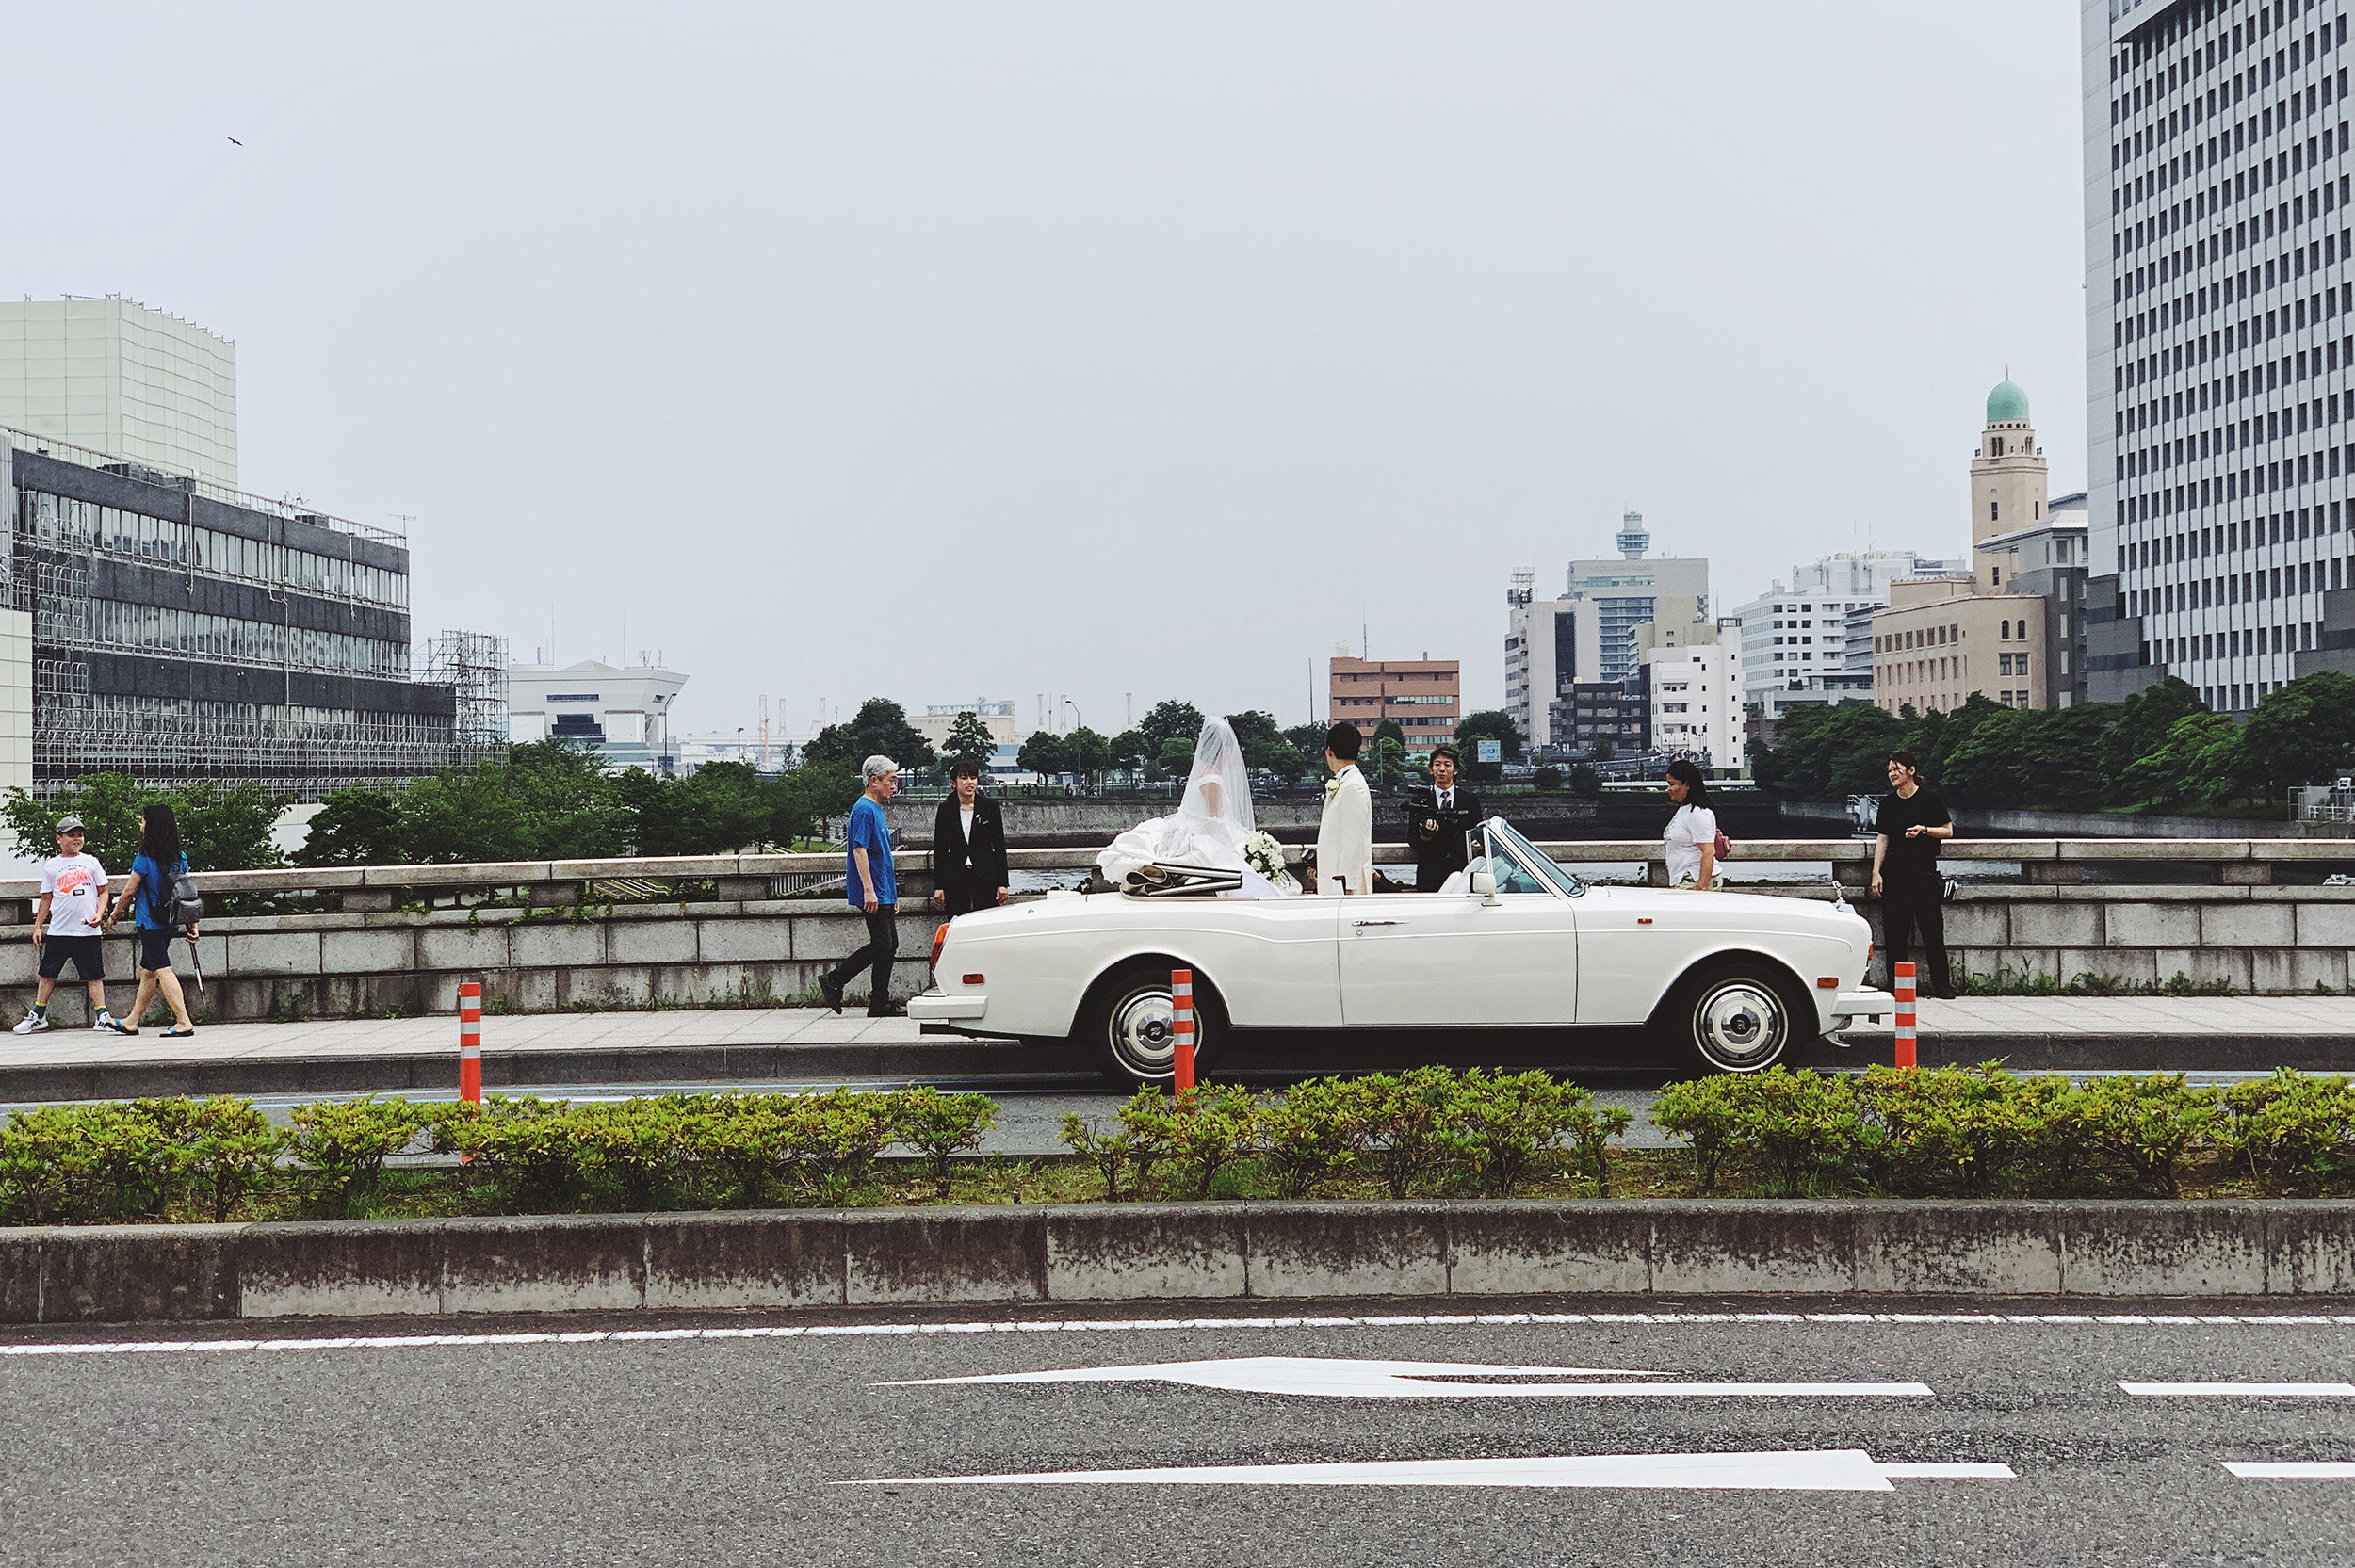 Spare a thought for the groom-to-be decked out in full tuxedo in Japan's hot and humid summer weather.